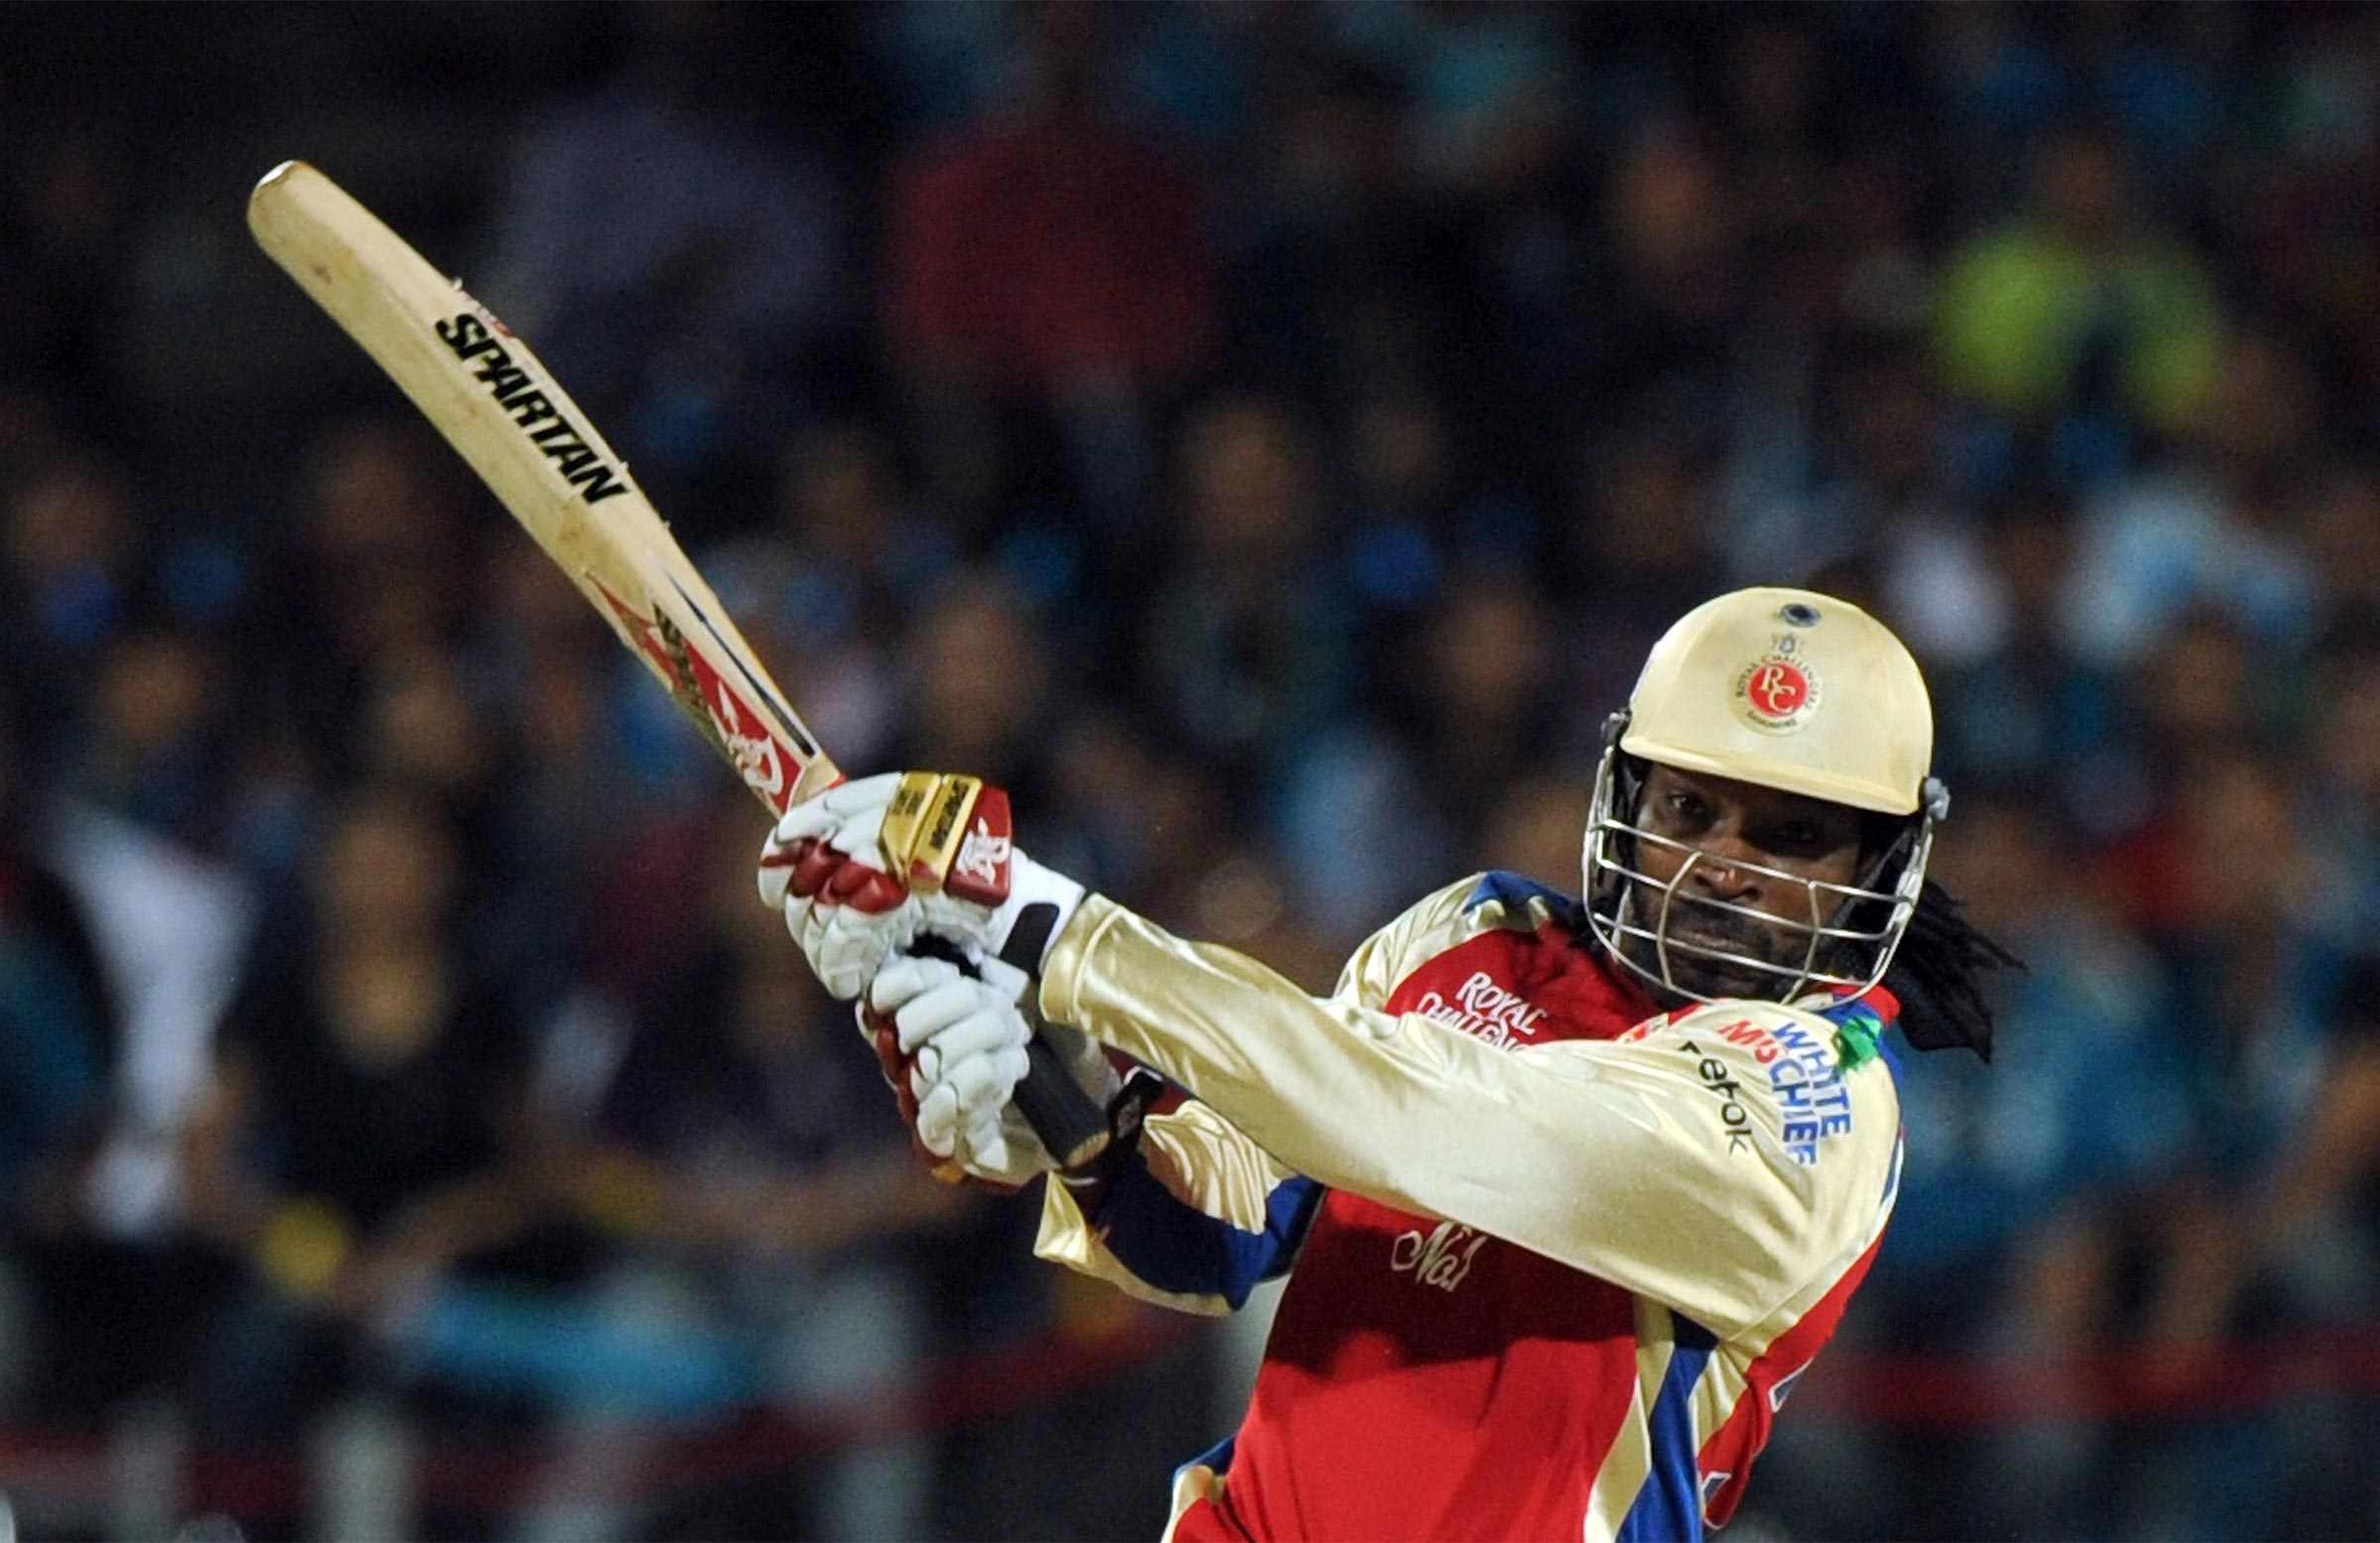 No.1 - Chris Gayle